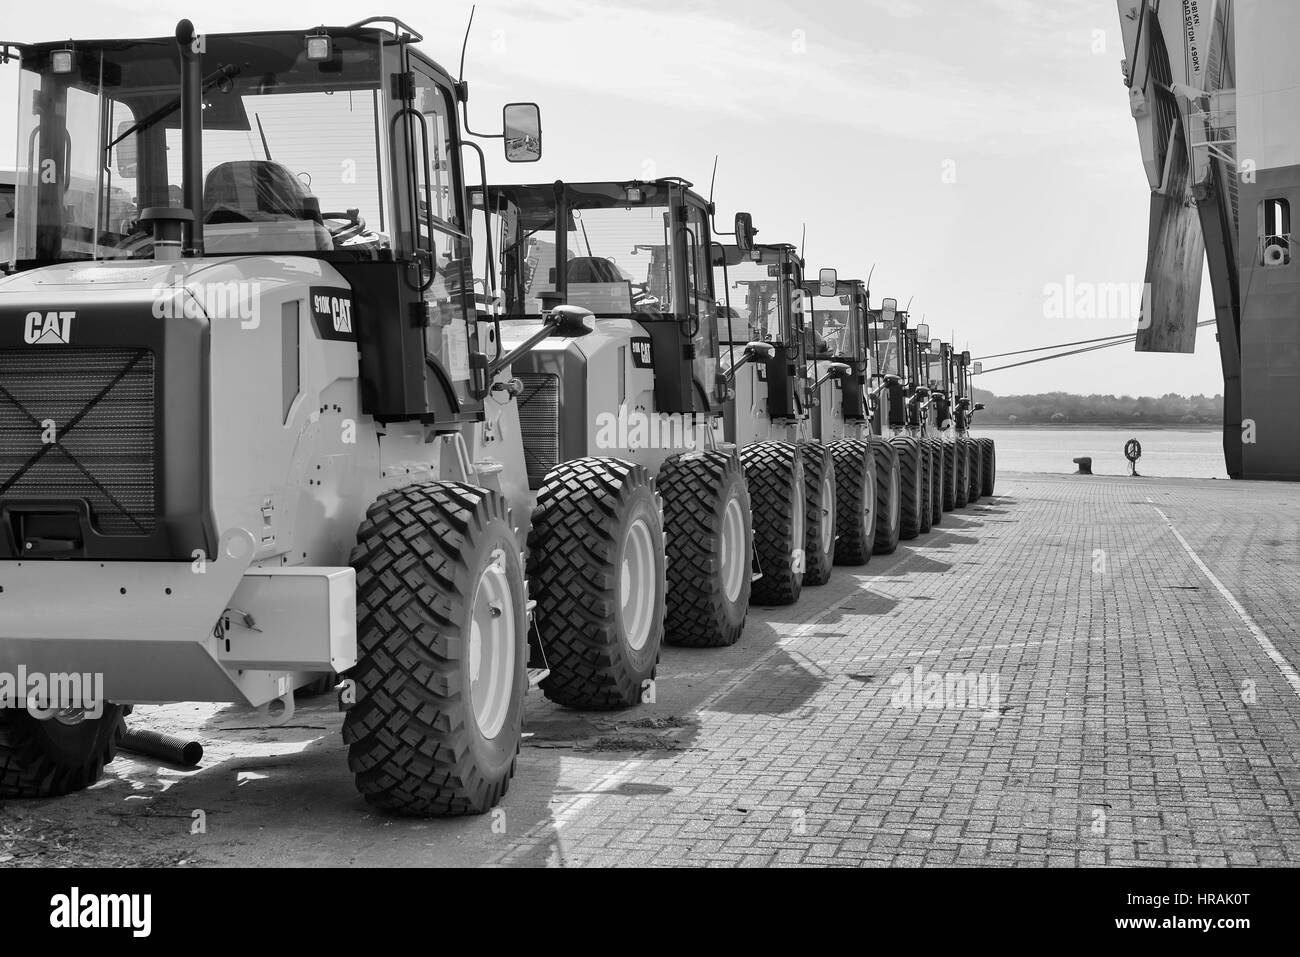 Commercial vehicles for export at The Port of Southampton, Hampshire, England - Stock Image